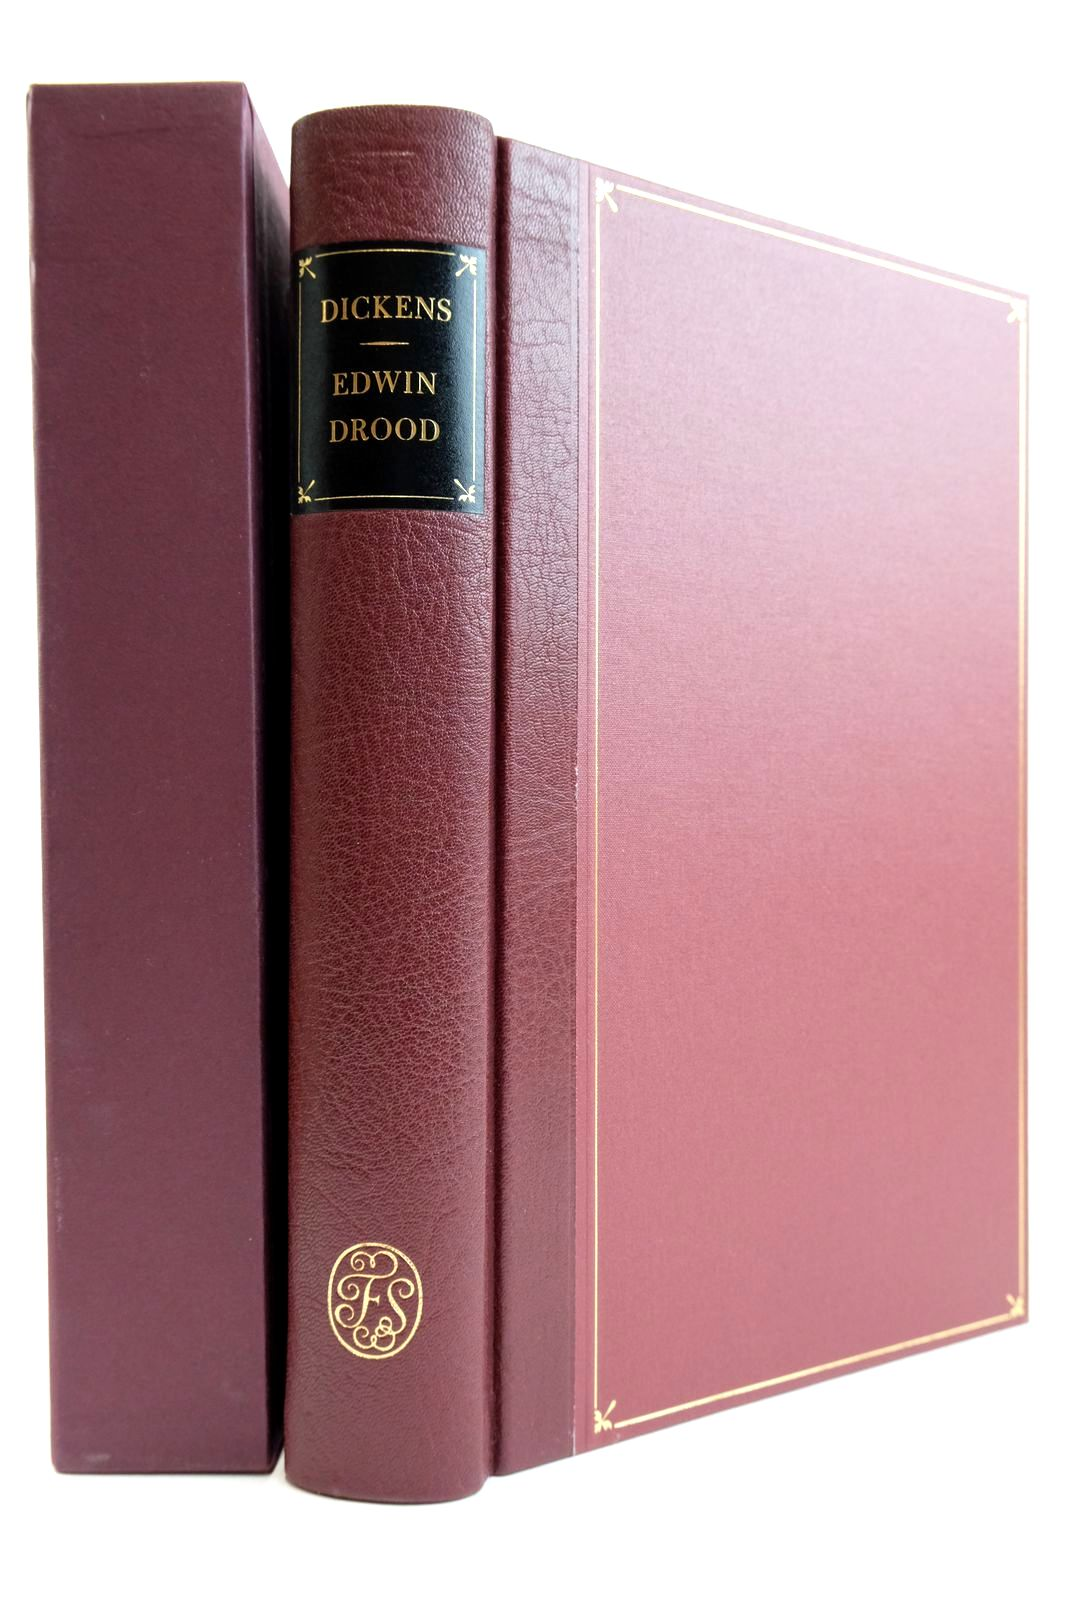 Photo of THE MYSTERY OF EDWIN DROOD written by Dickens, Charles illustrated by Fildes, Luke published by Folio Society (STOCK CODE: 2132425)  for sale by Stella & Rose's Books